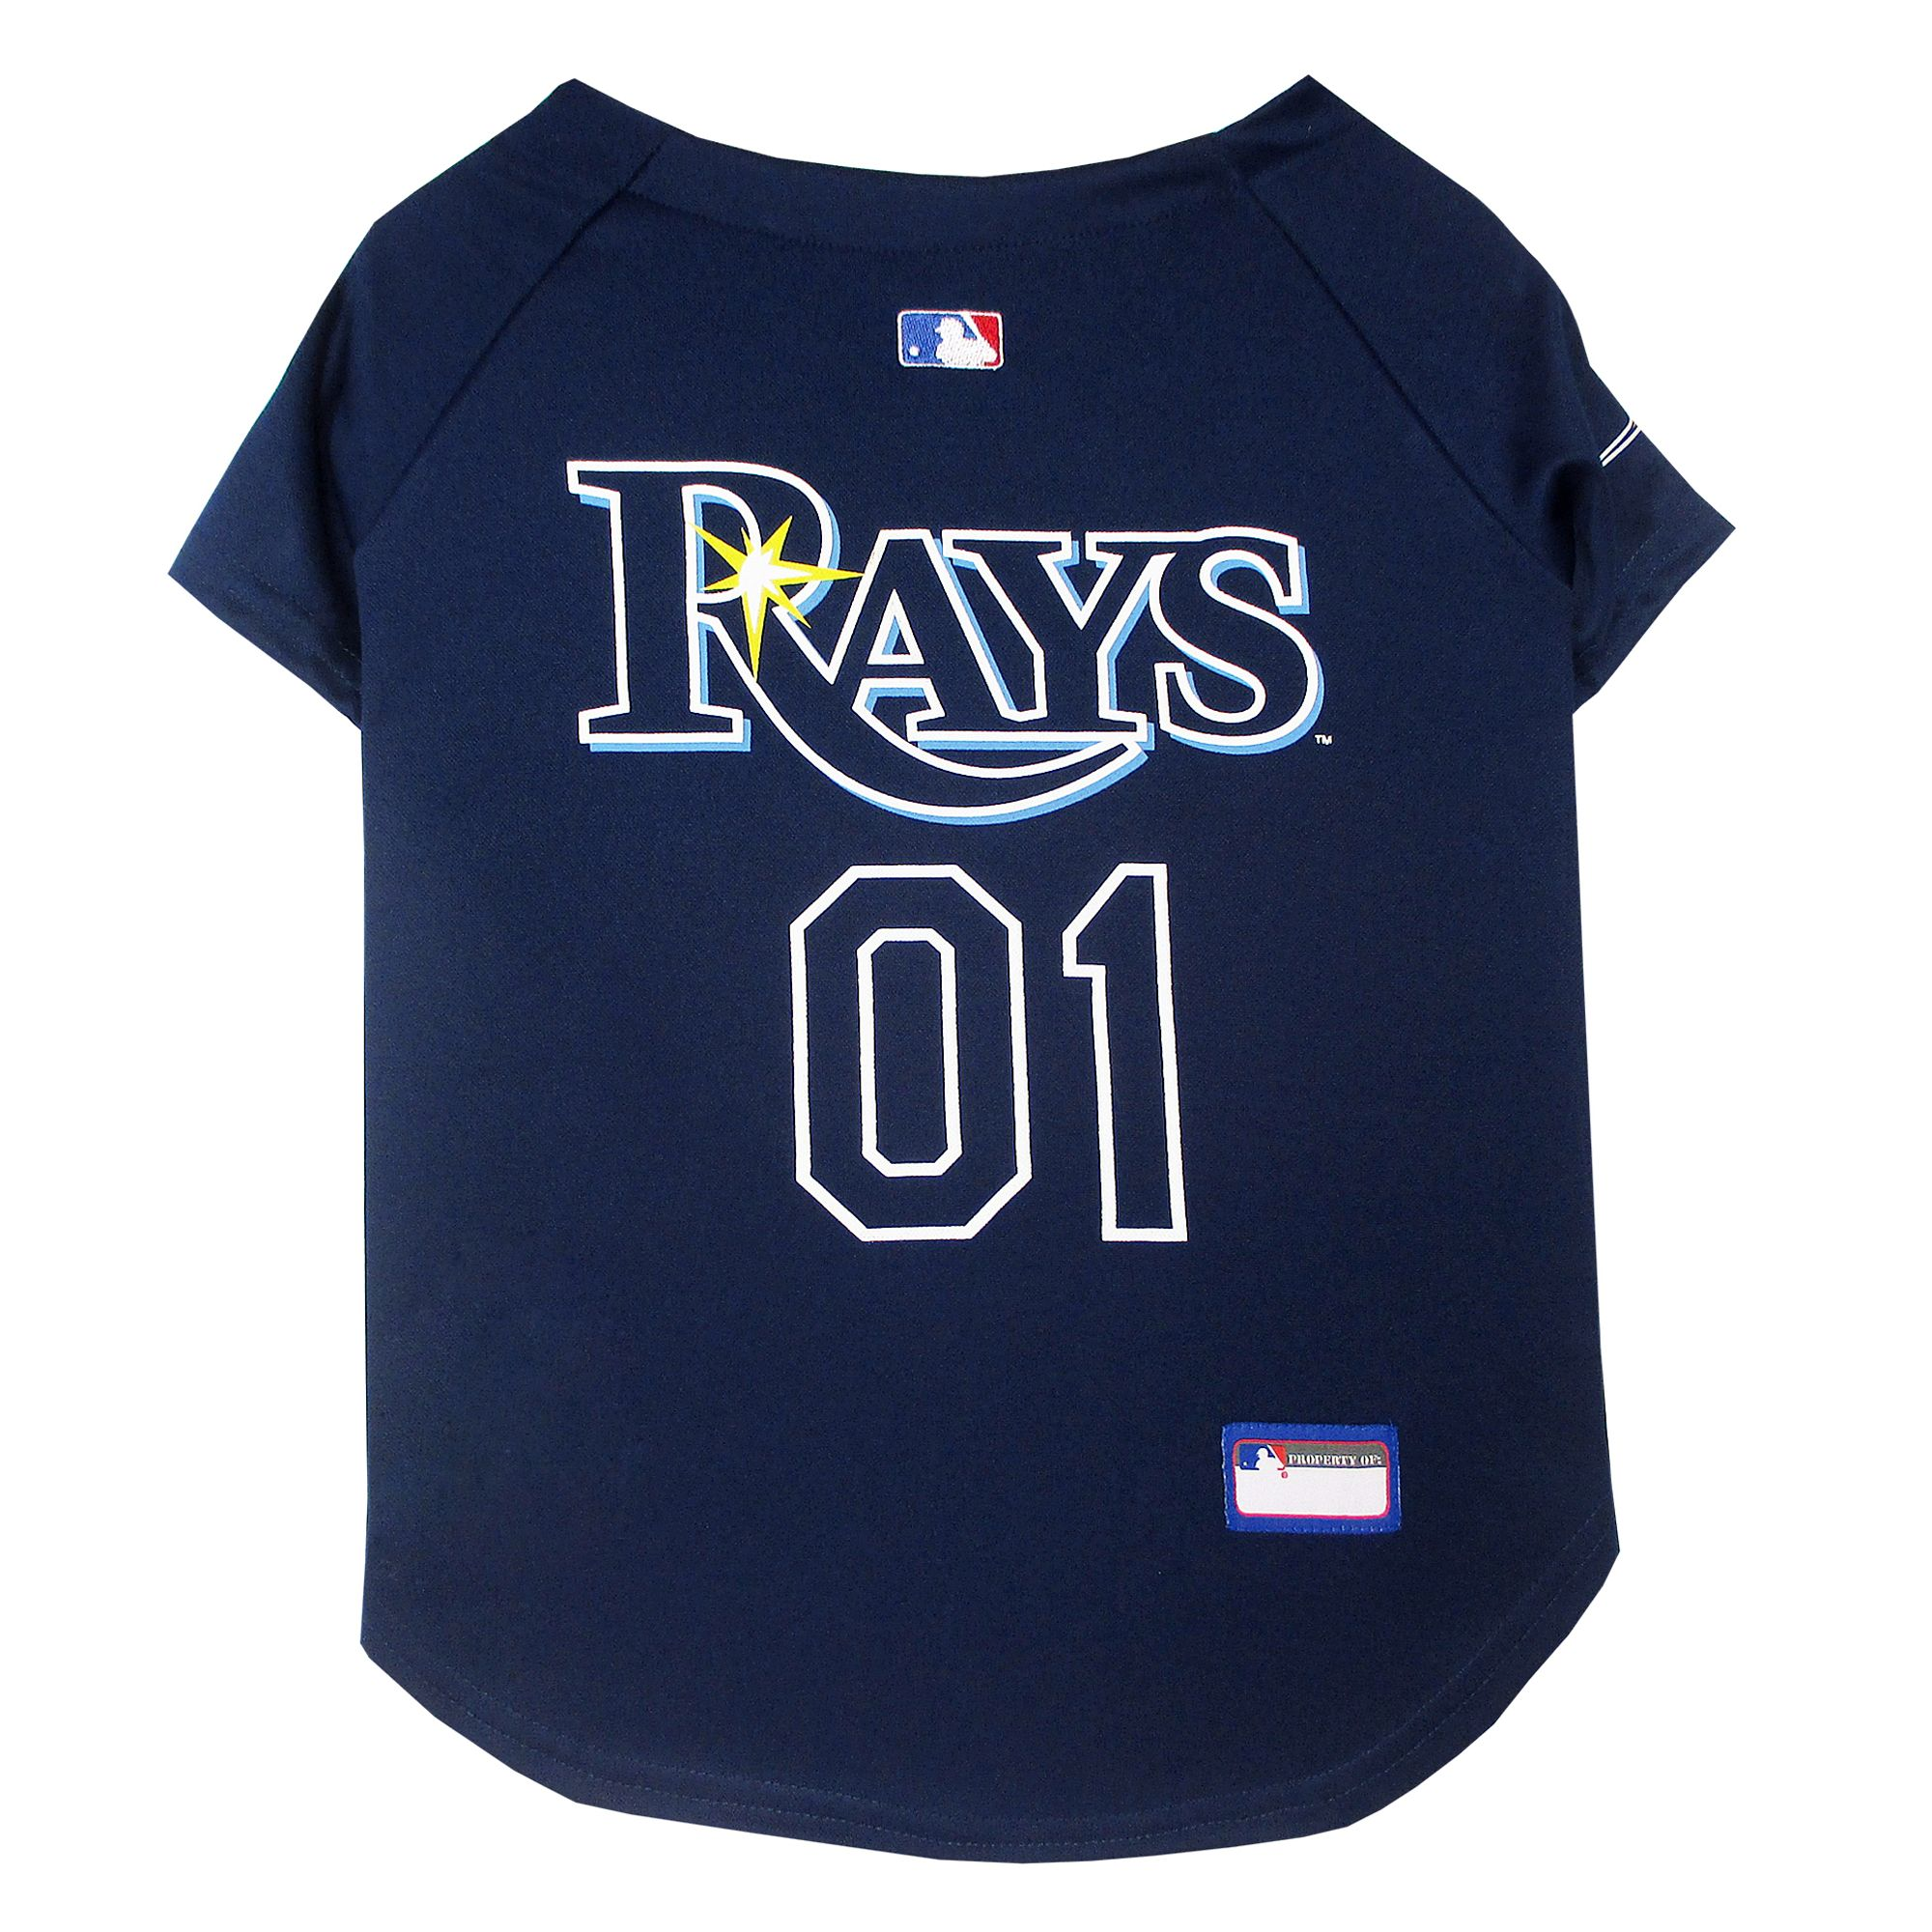 Tampa Bay Rays MLB Jersey size: Small, Pets First 5252314